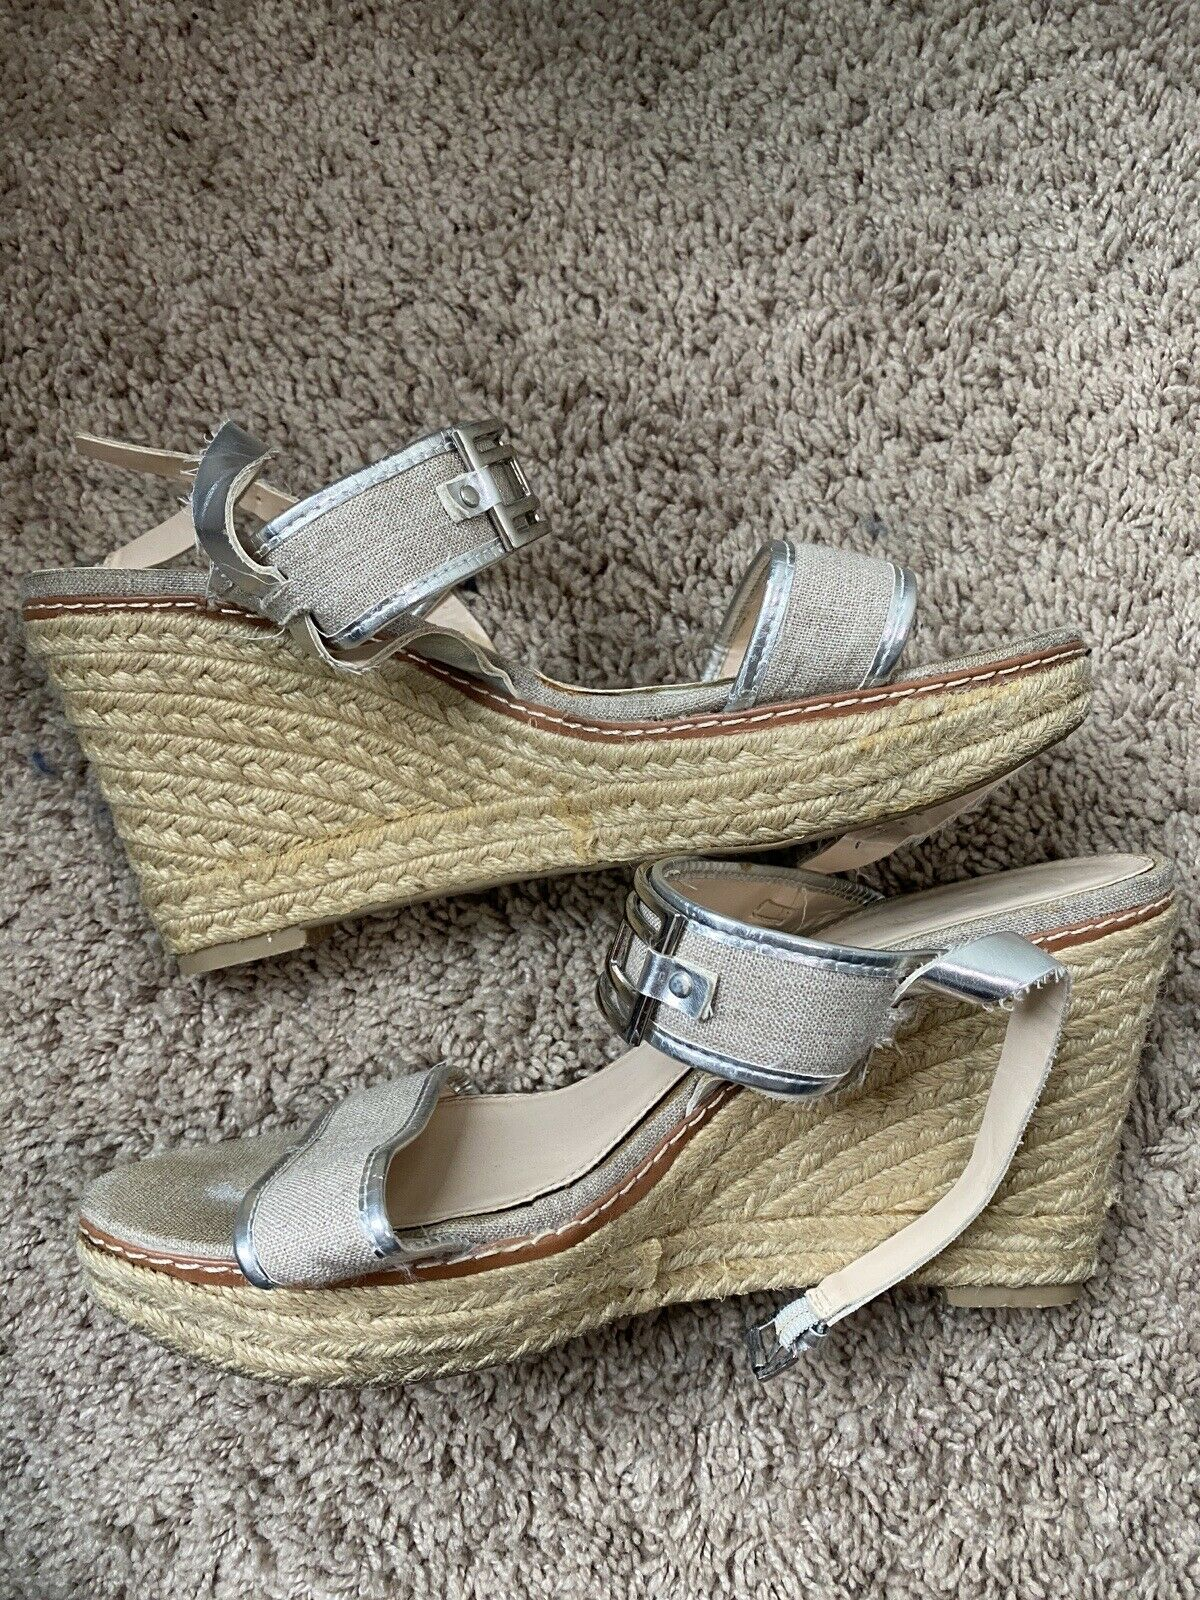 Womens Tommy hilfiger wedges size 10 - image 2